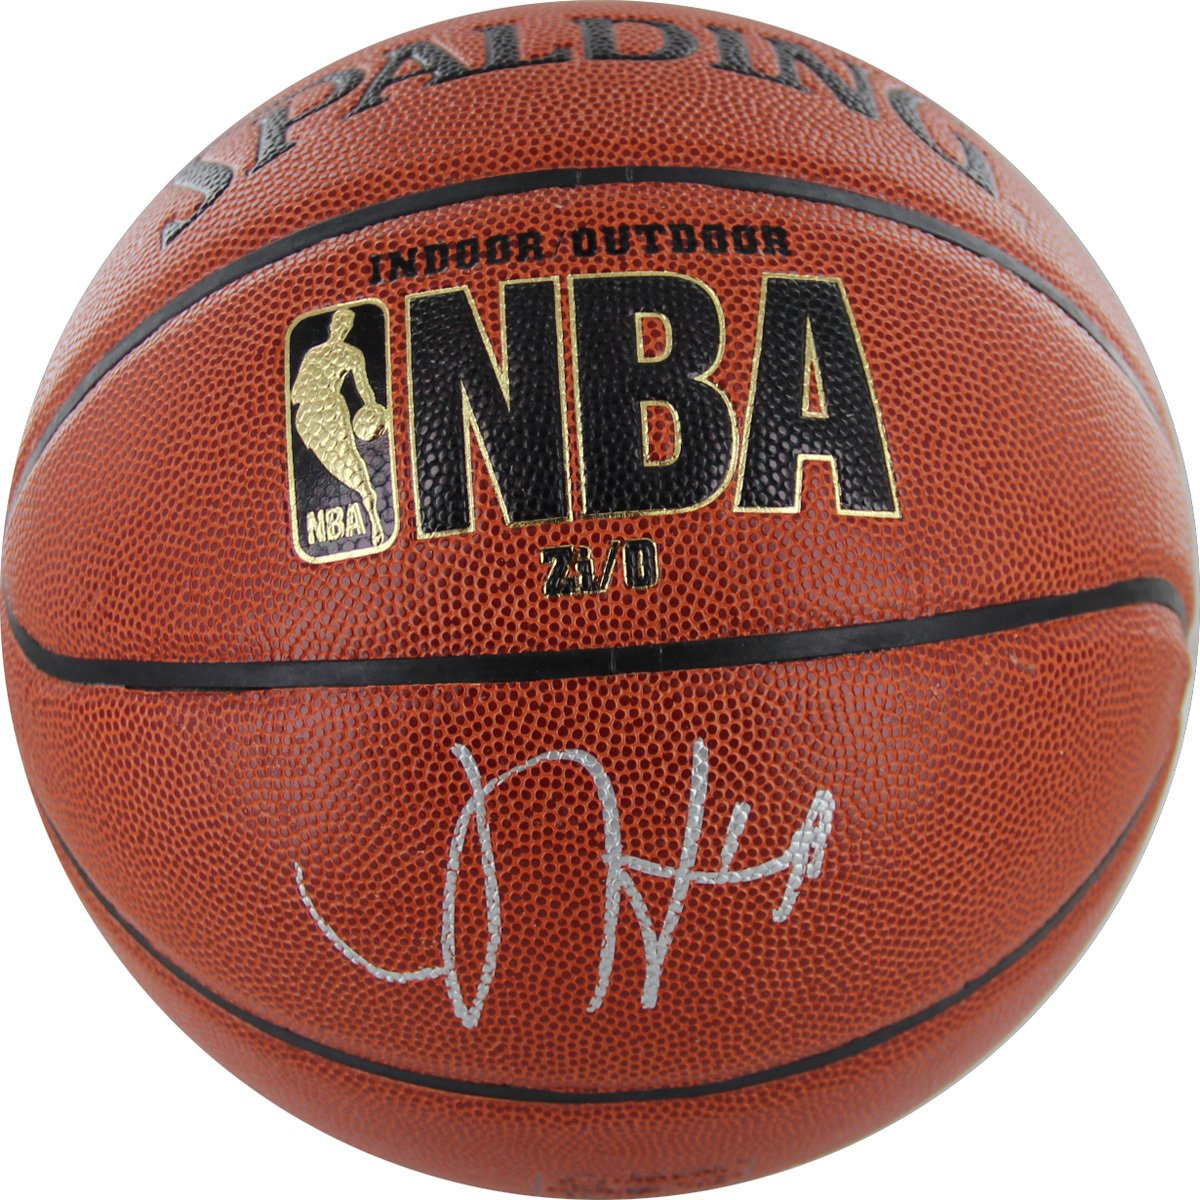 NBA Houston Rockets Memorabilia James Harden Signed Basketball Steiner Sports HARDBKS000000